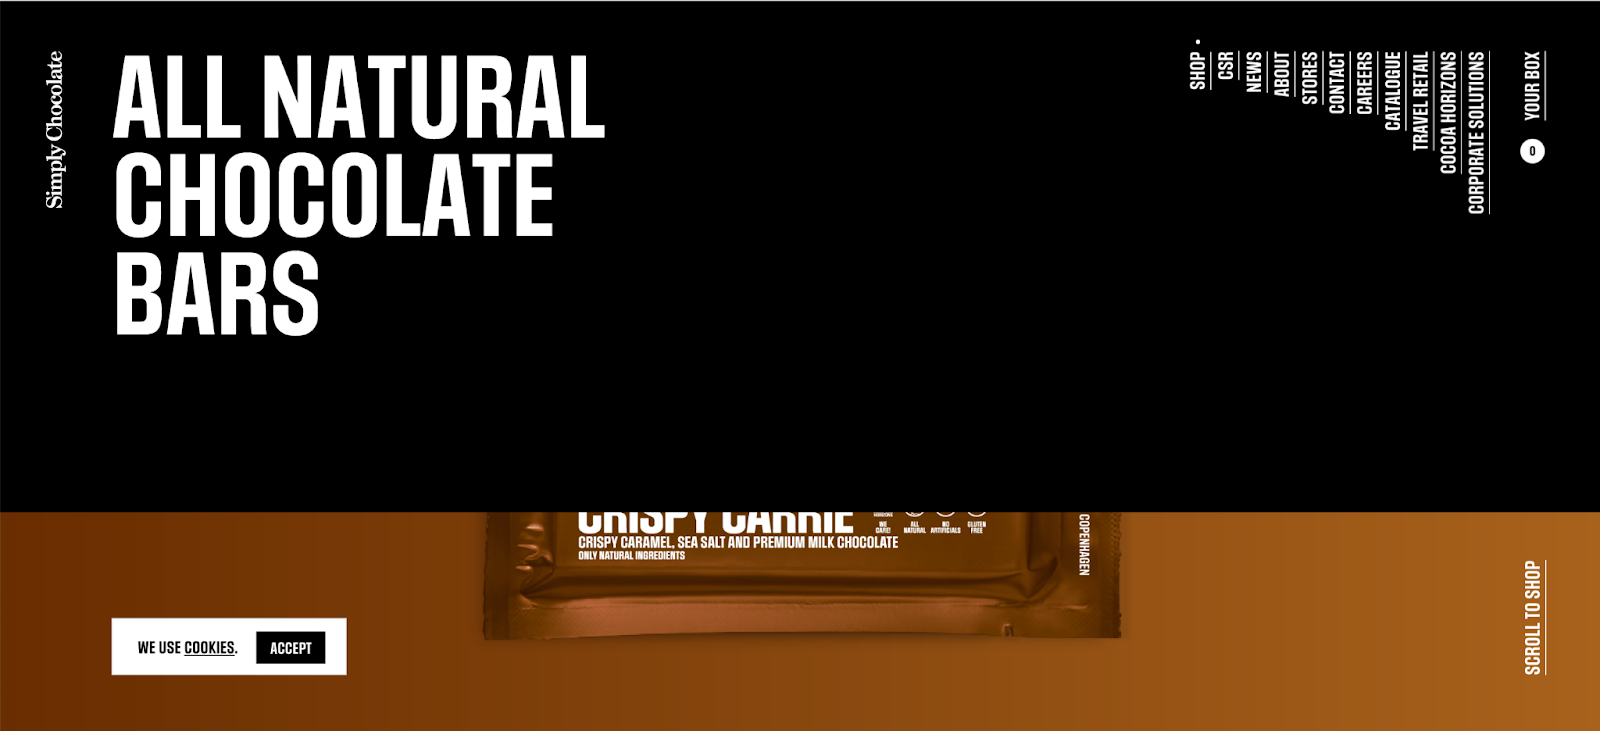 Simply Chocolate: The menu bar matches the color scheme and hides the goody. Brilliant